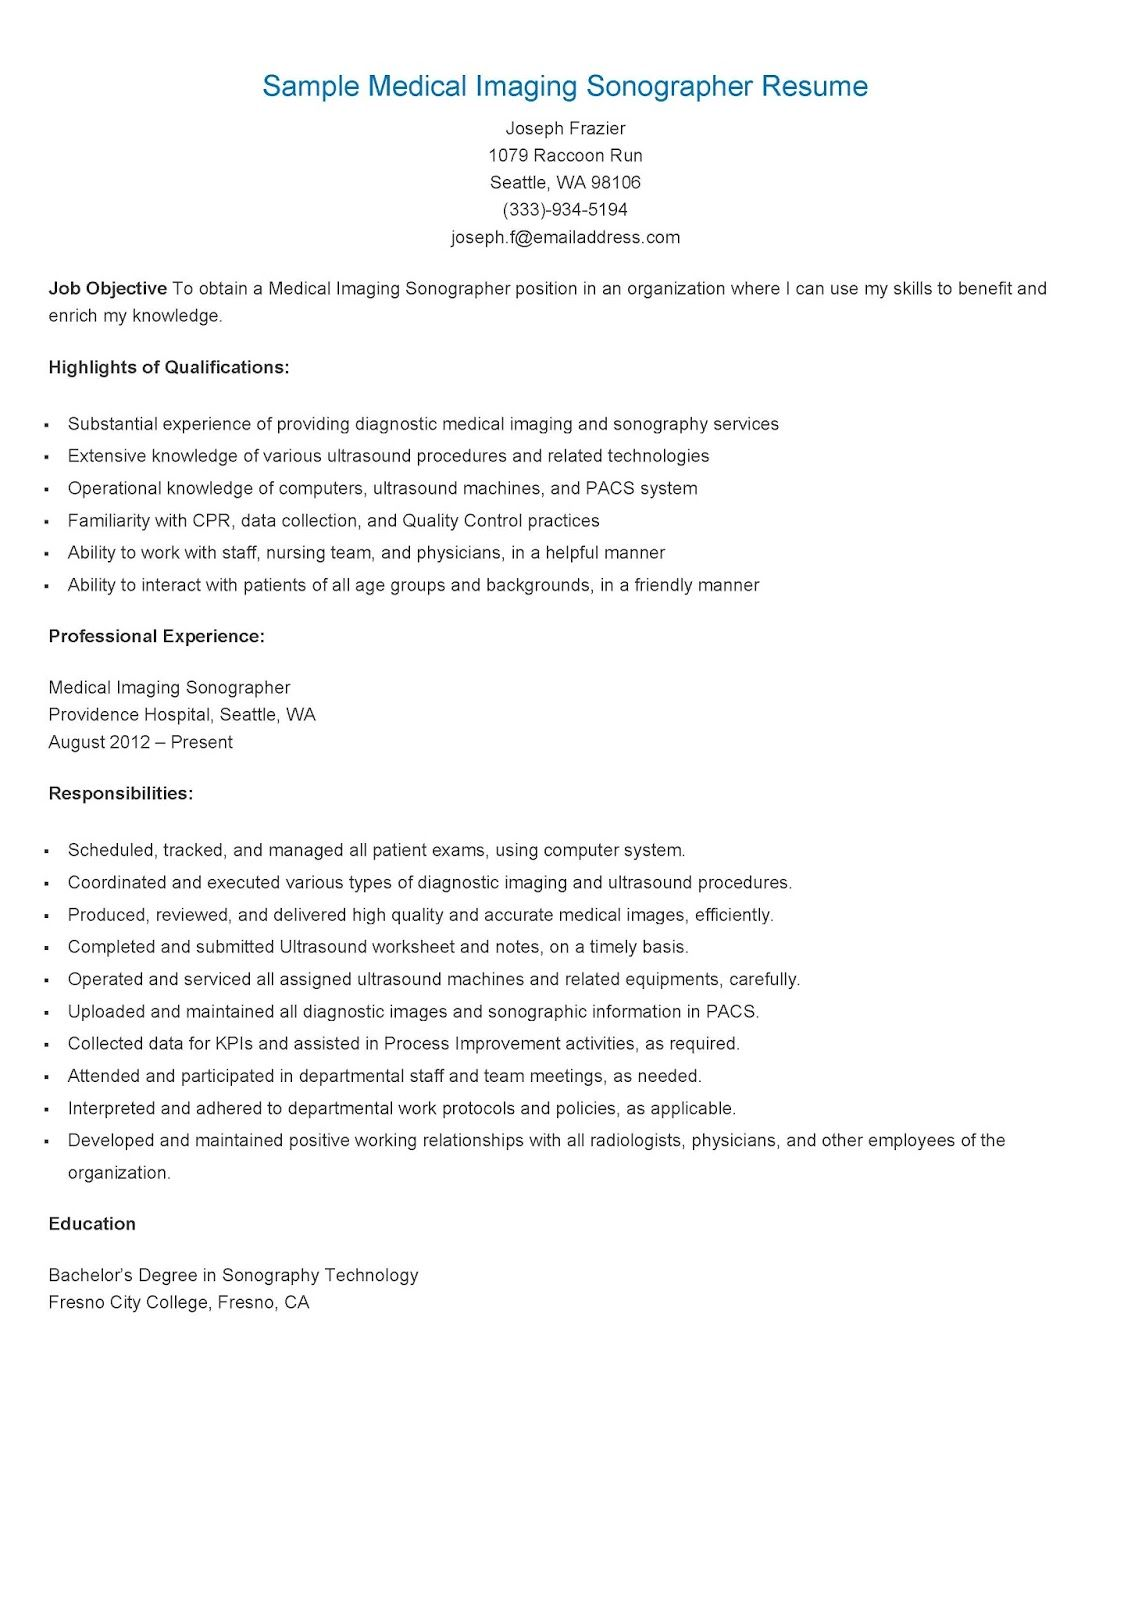 Superior Sample Medical Imaging Sonographer Resume|Resume Samples Regard To Sonographer Resume